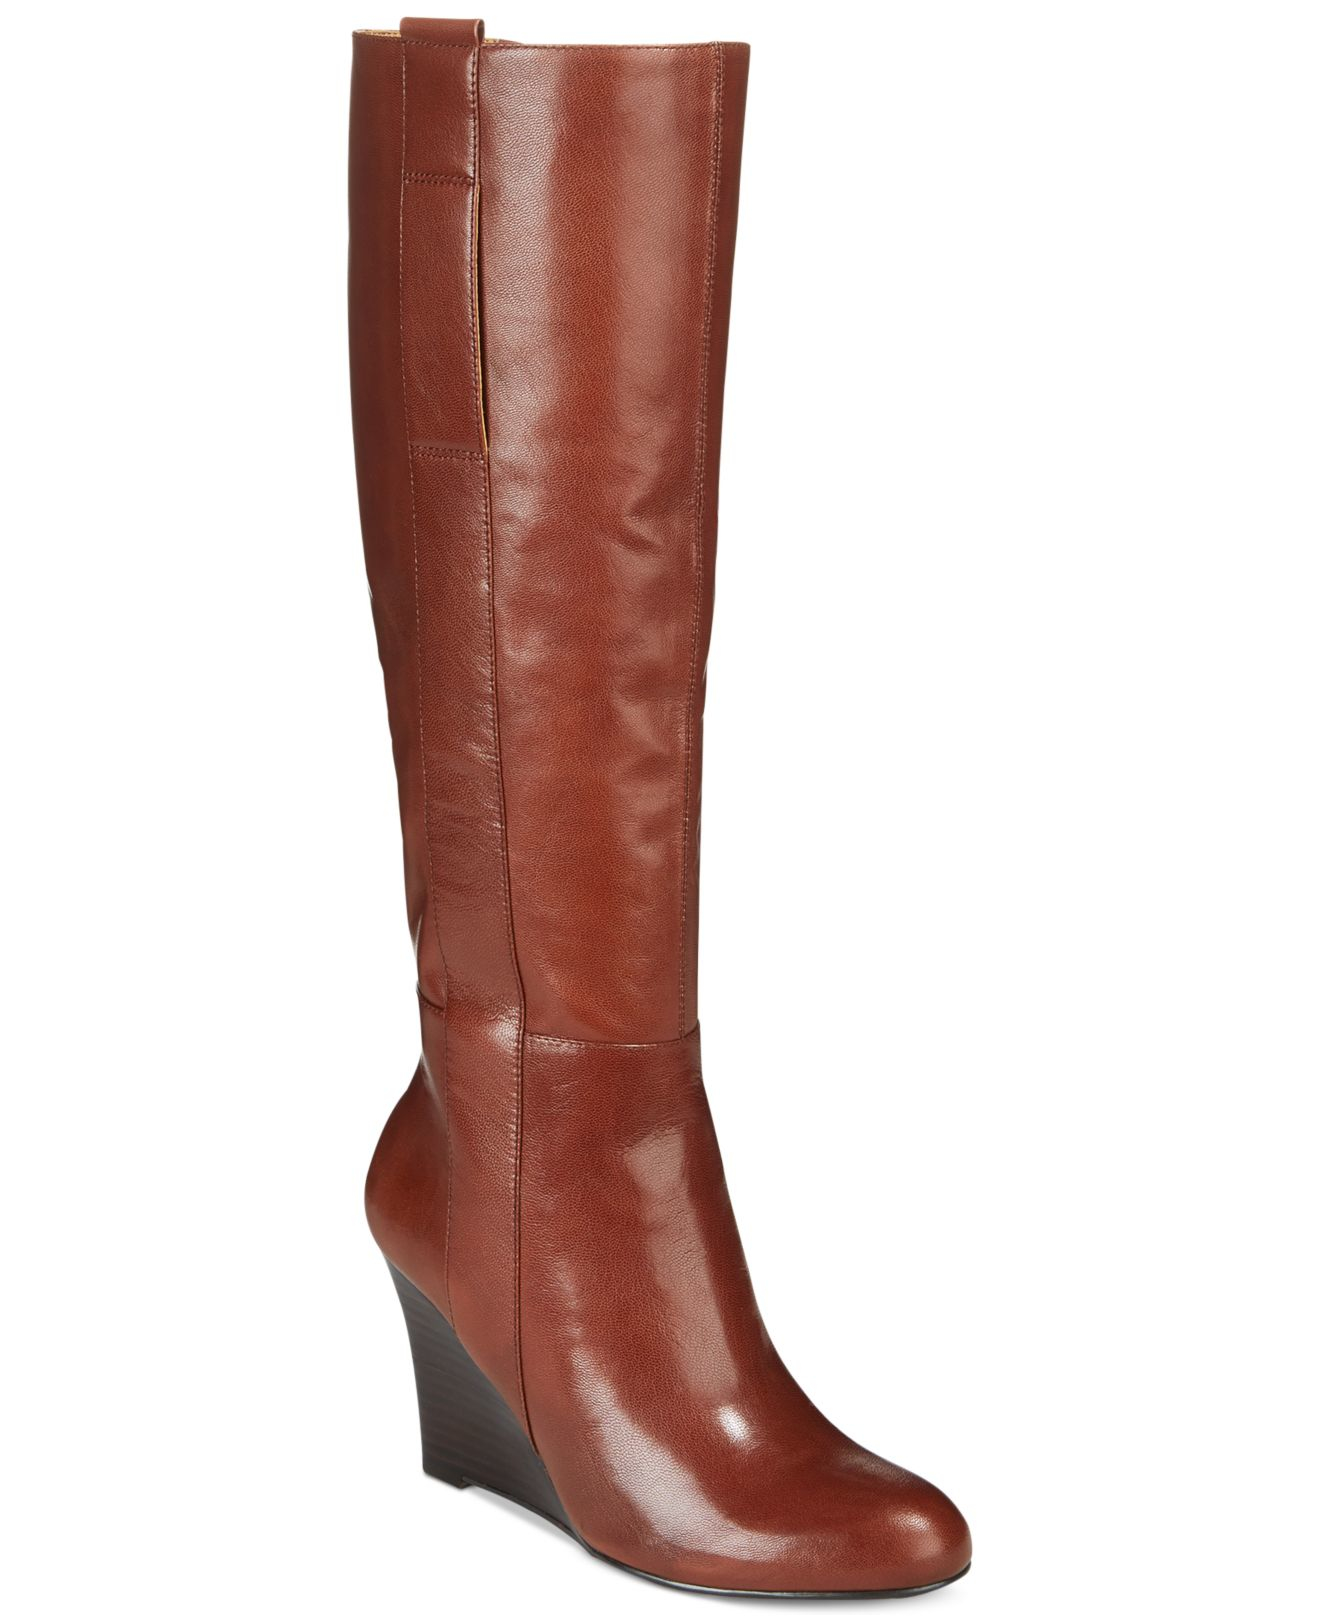 nine west oran wedge boots in brown brown leather